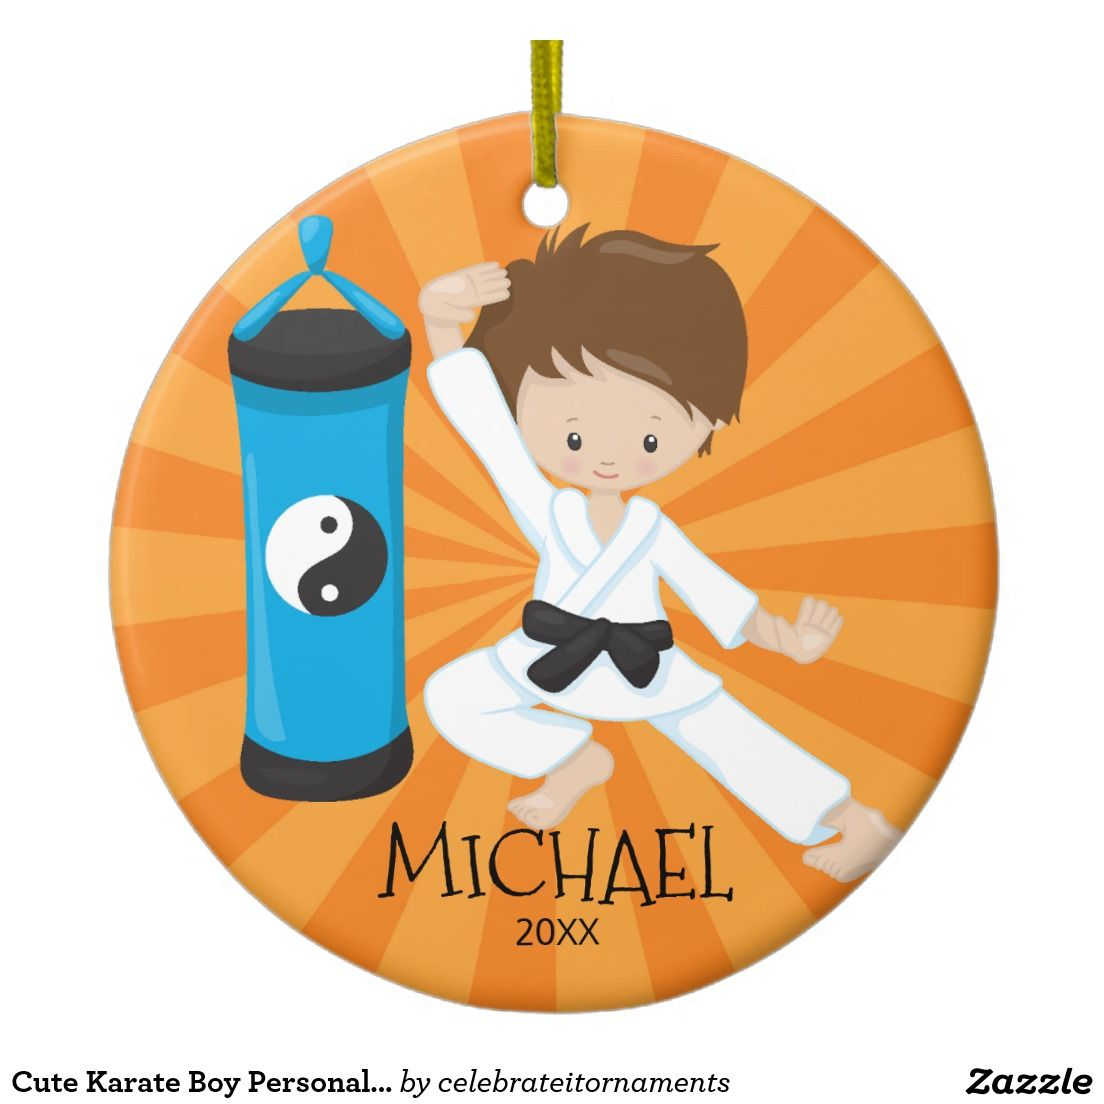 Karate ornament - Cute Karate Boy Personalized Christmas Ornament